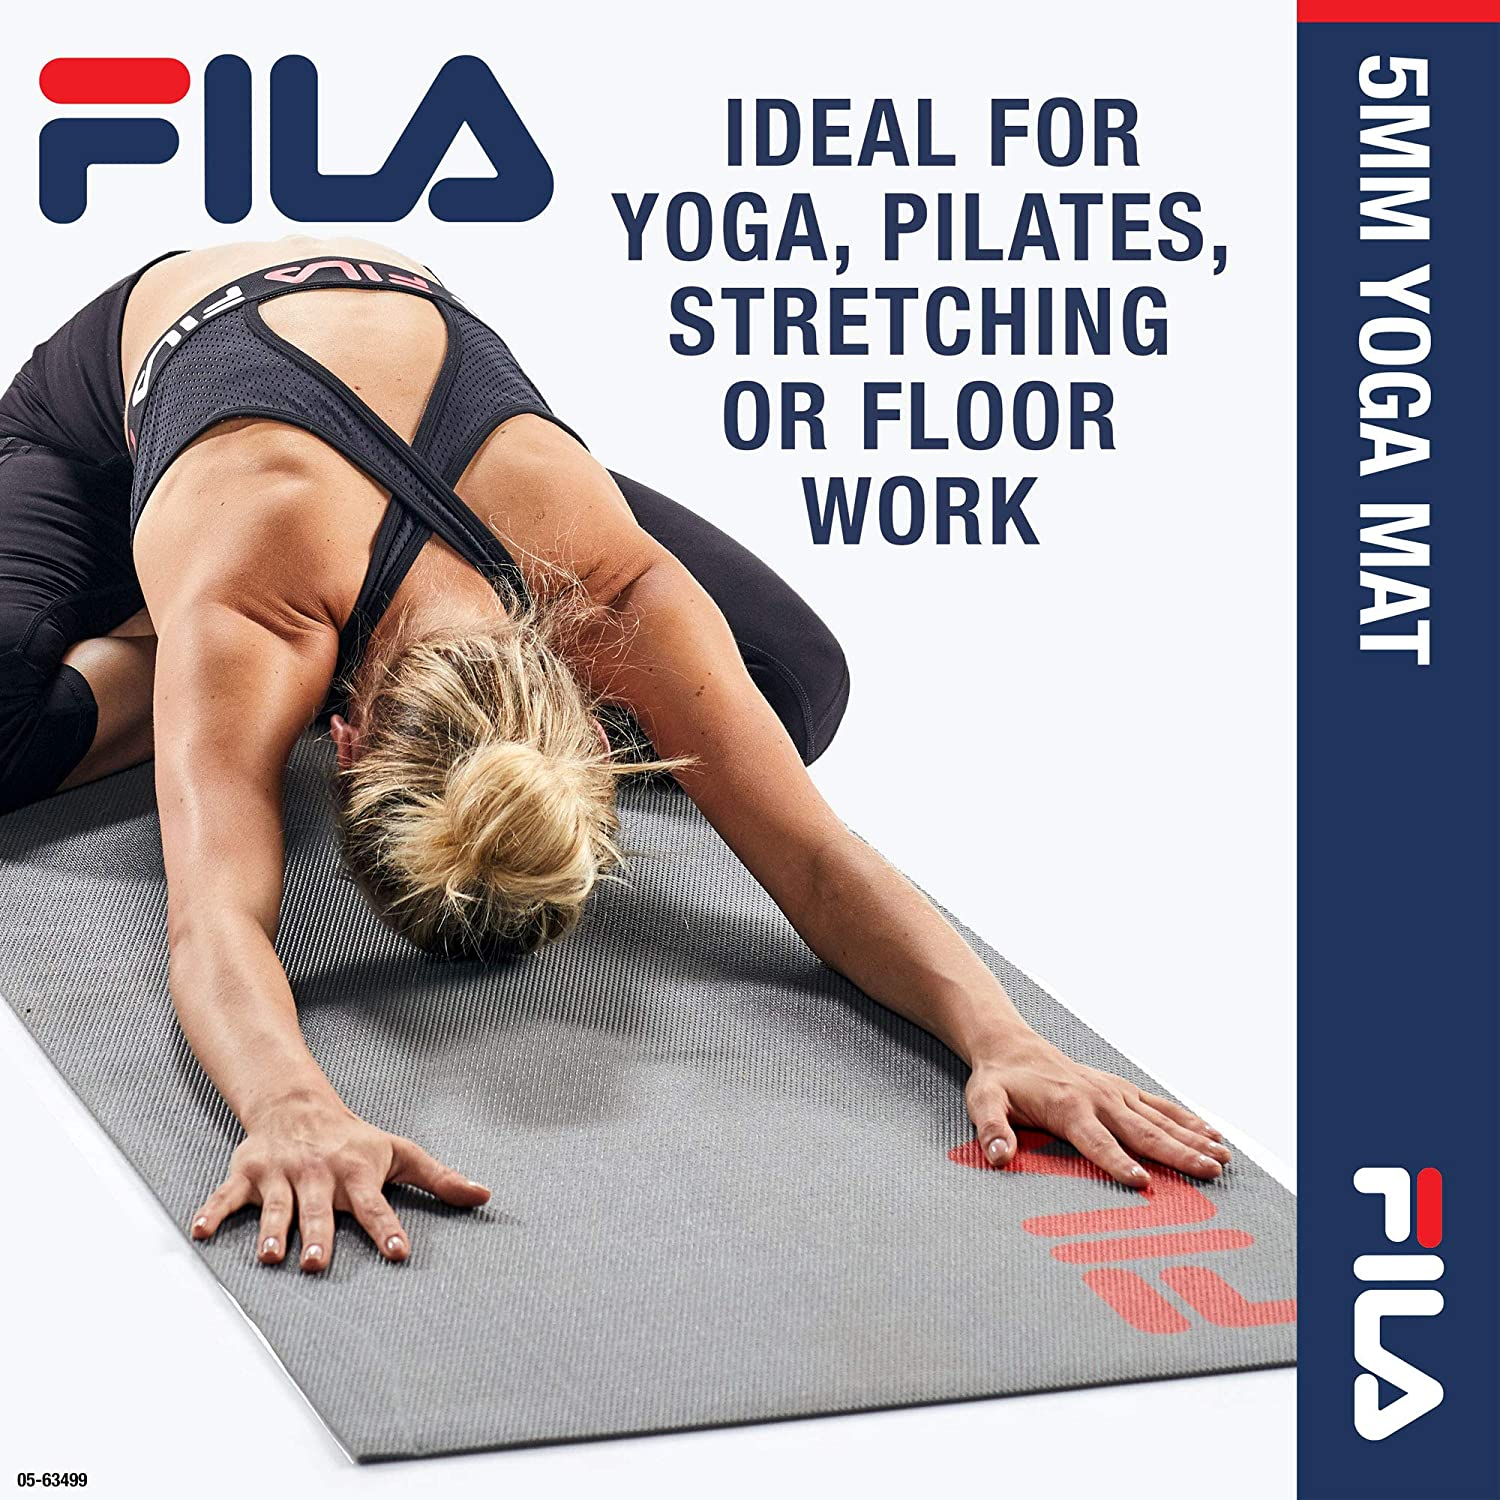 Amazon.com: Fila Accessories - Esterilla de yoga clásica con ...